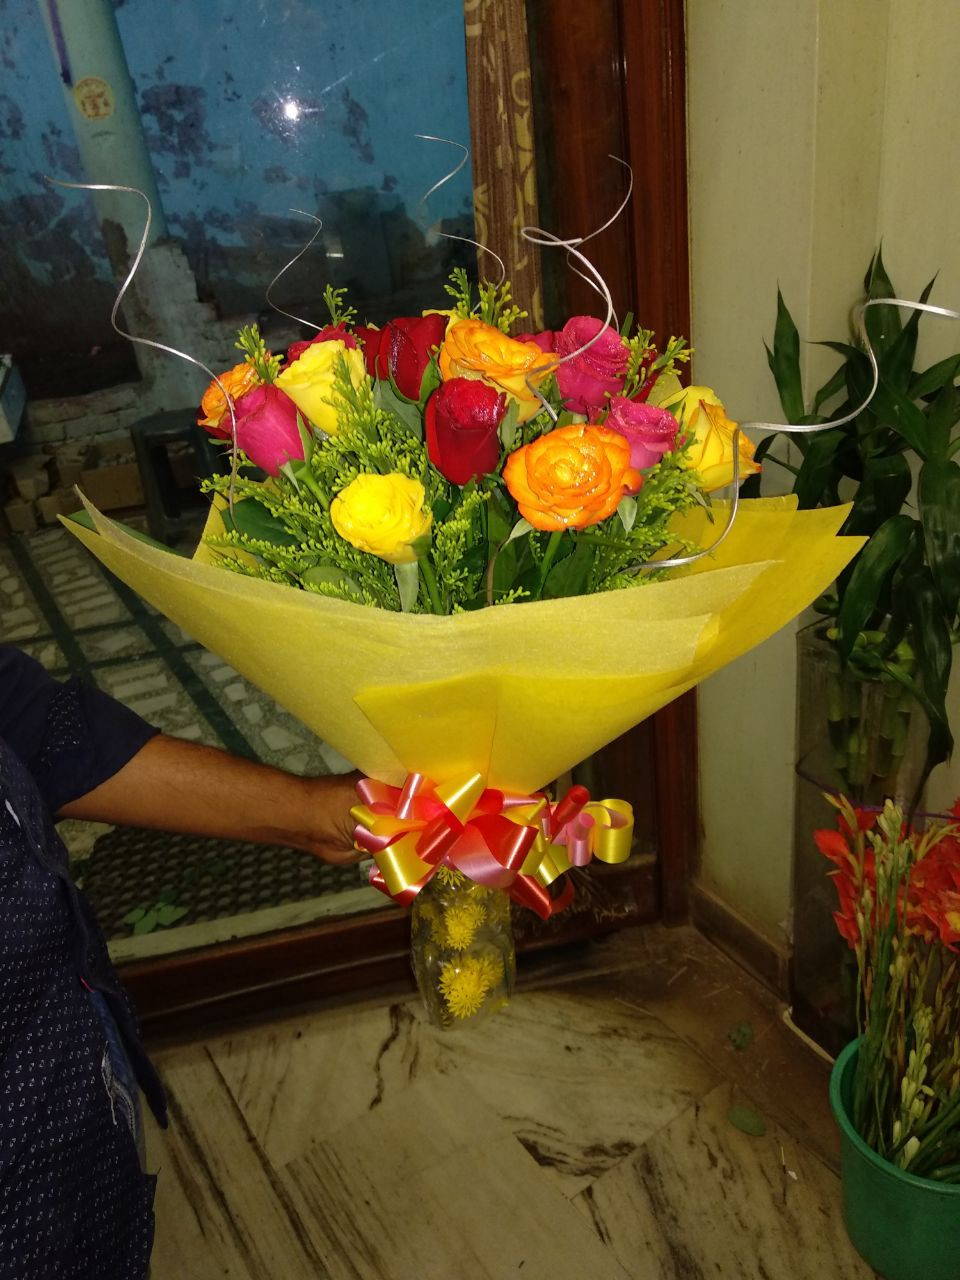 Online Flower Delivery in Jaipur Offers Several Gifts with Flowers and  Bouquets | by Giftz Bag | Medium